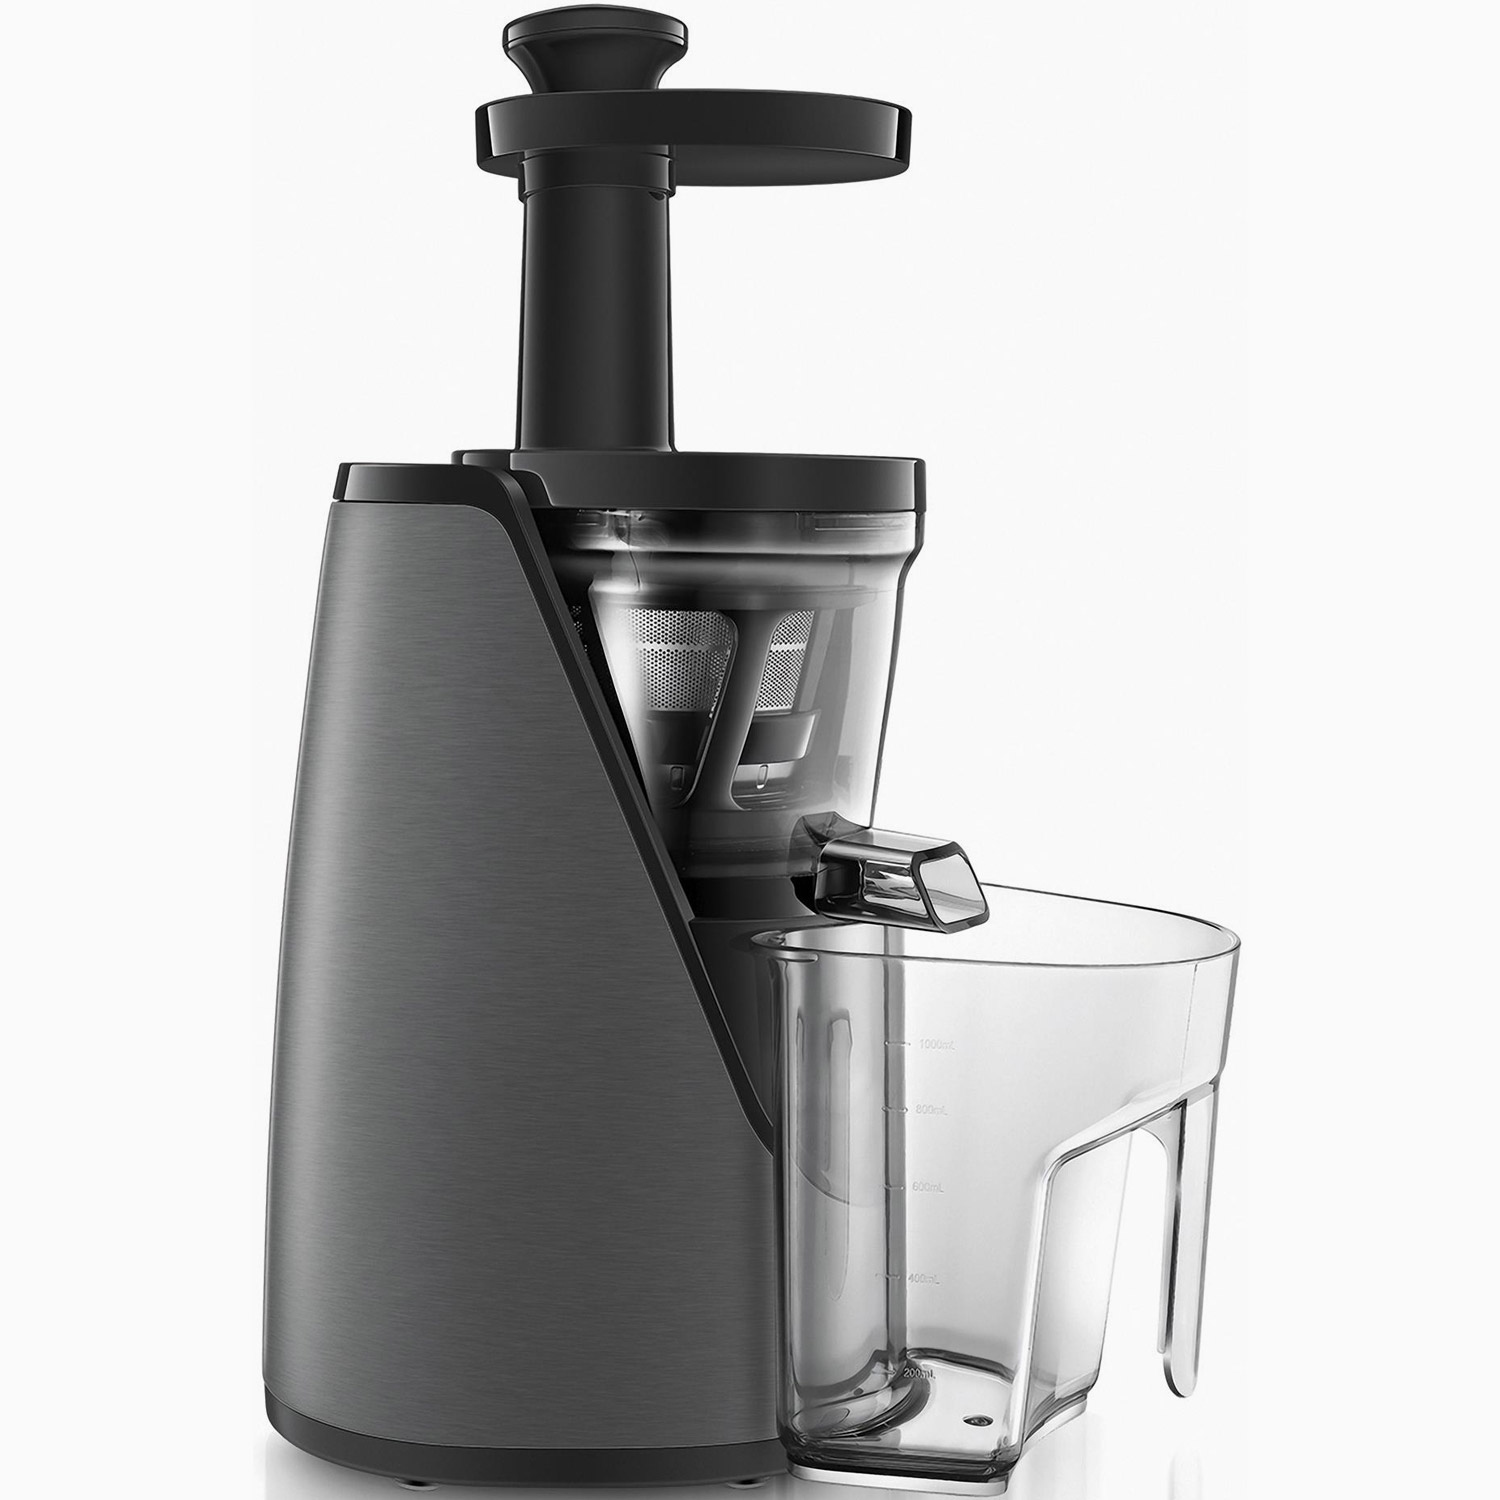 grundig slow juicer sj 8640 entsafter mixer titan schwarz. Black Bedroom Furniture Sets. Home Design Ideas